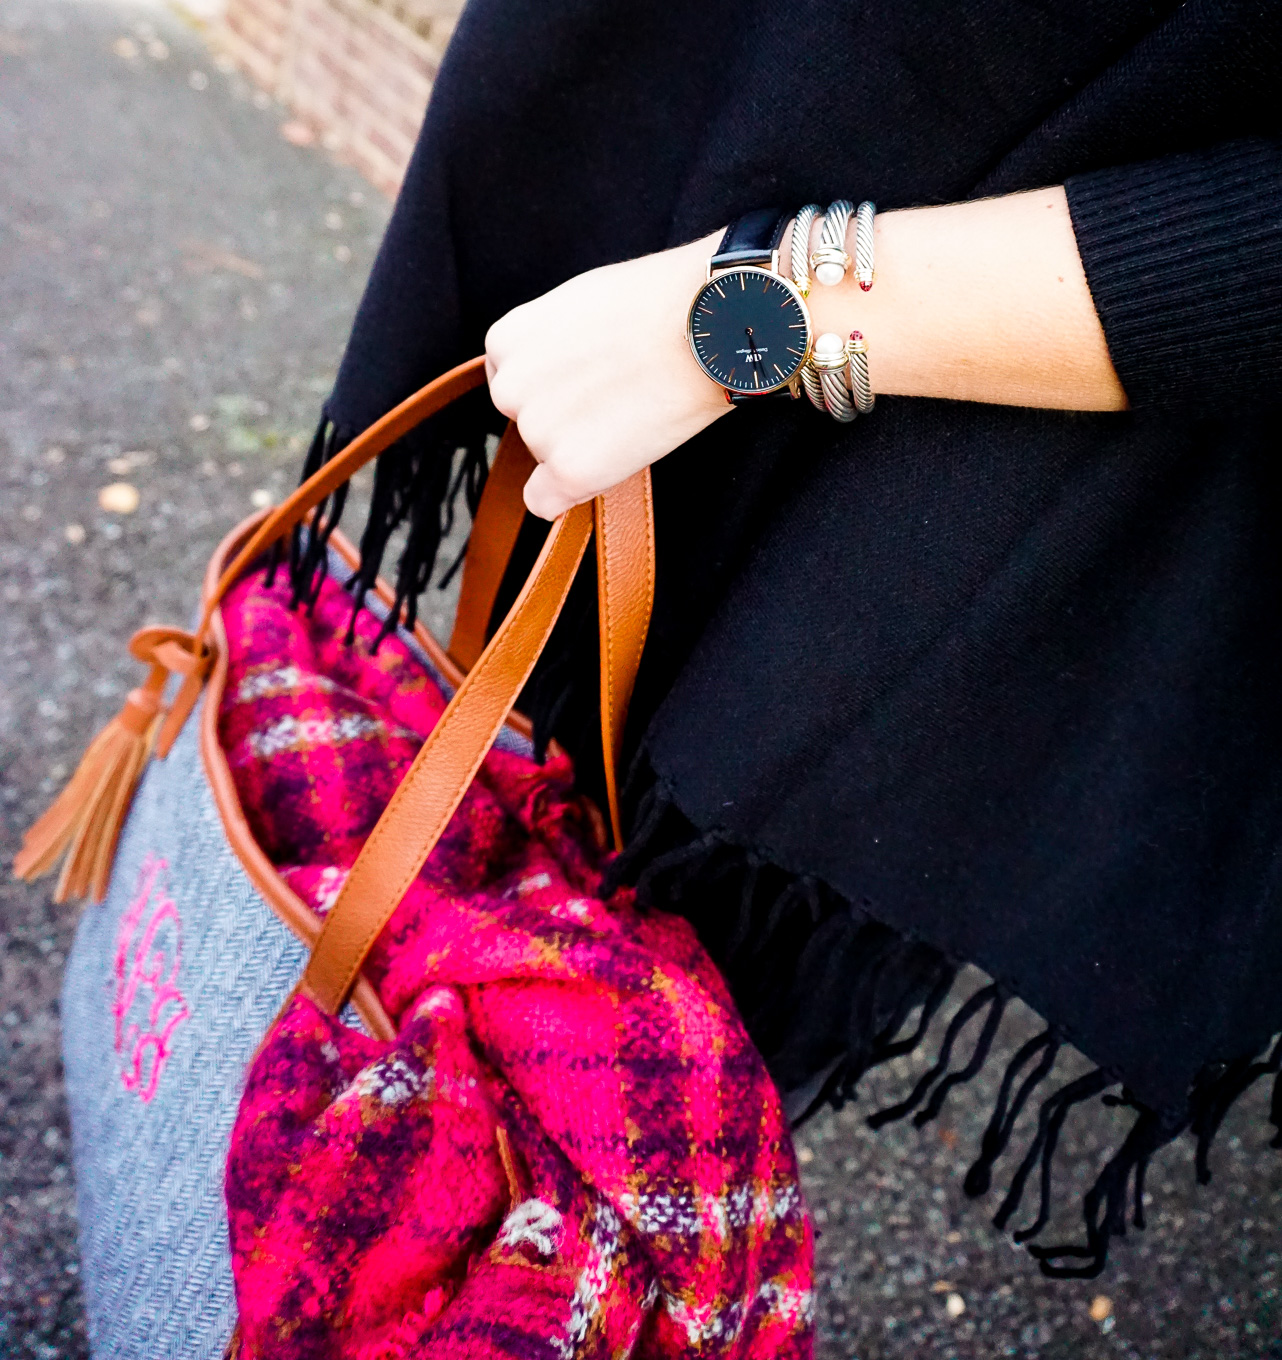 amy-littleson-from-i-believe-in-pink-in-united-monograms-monogram-boots-and-tote-with-a-black-tassel-poncho-9